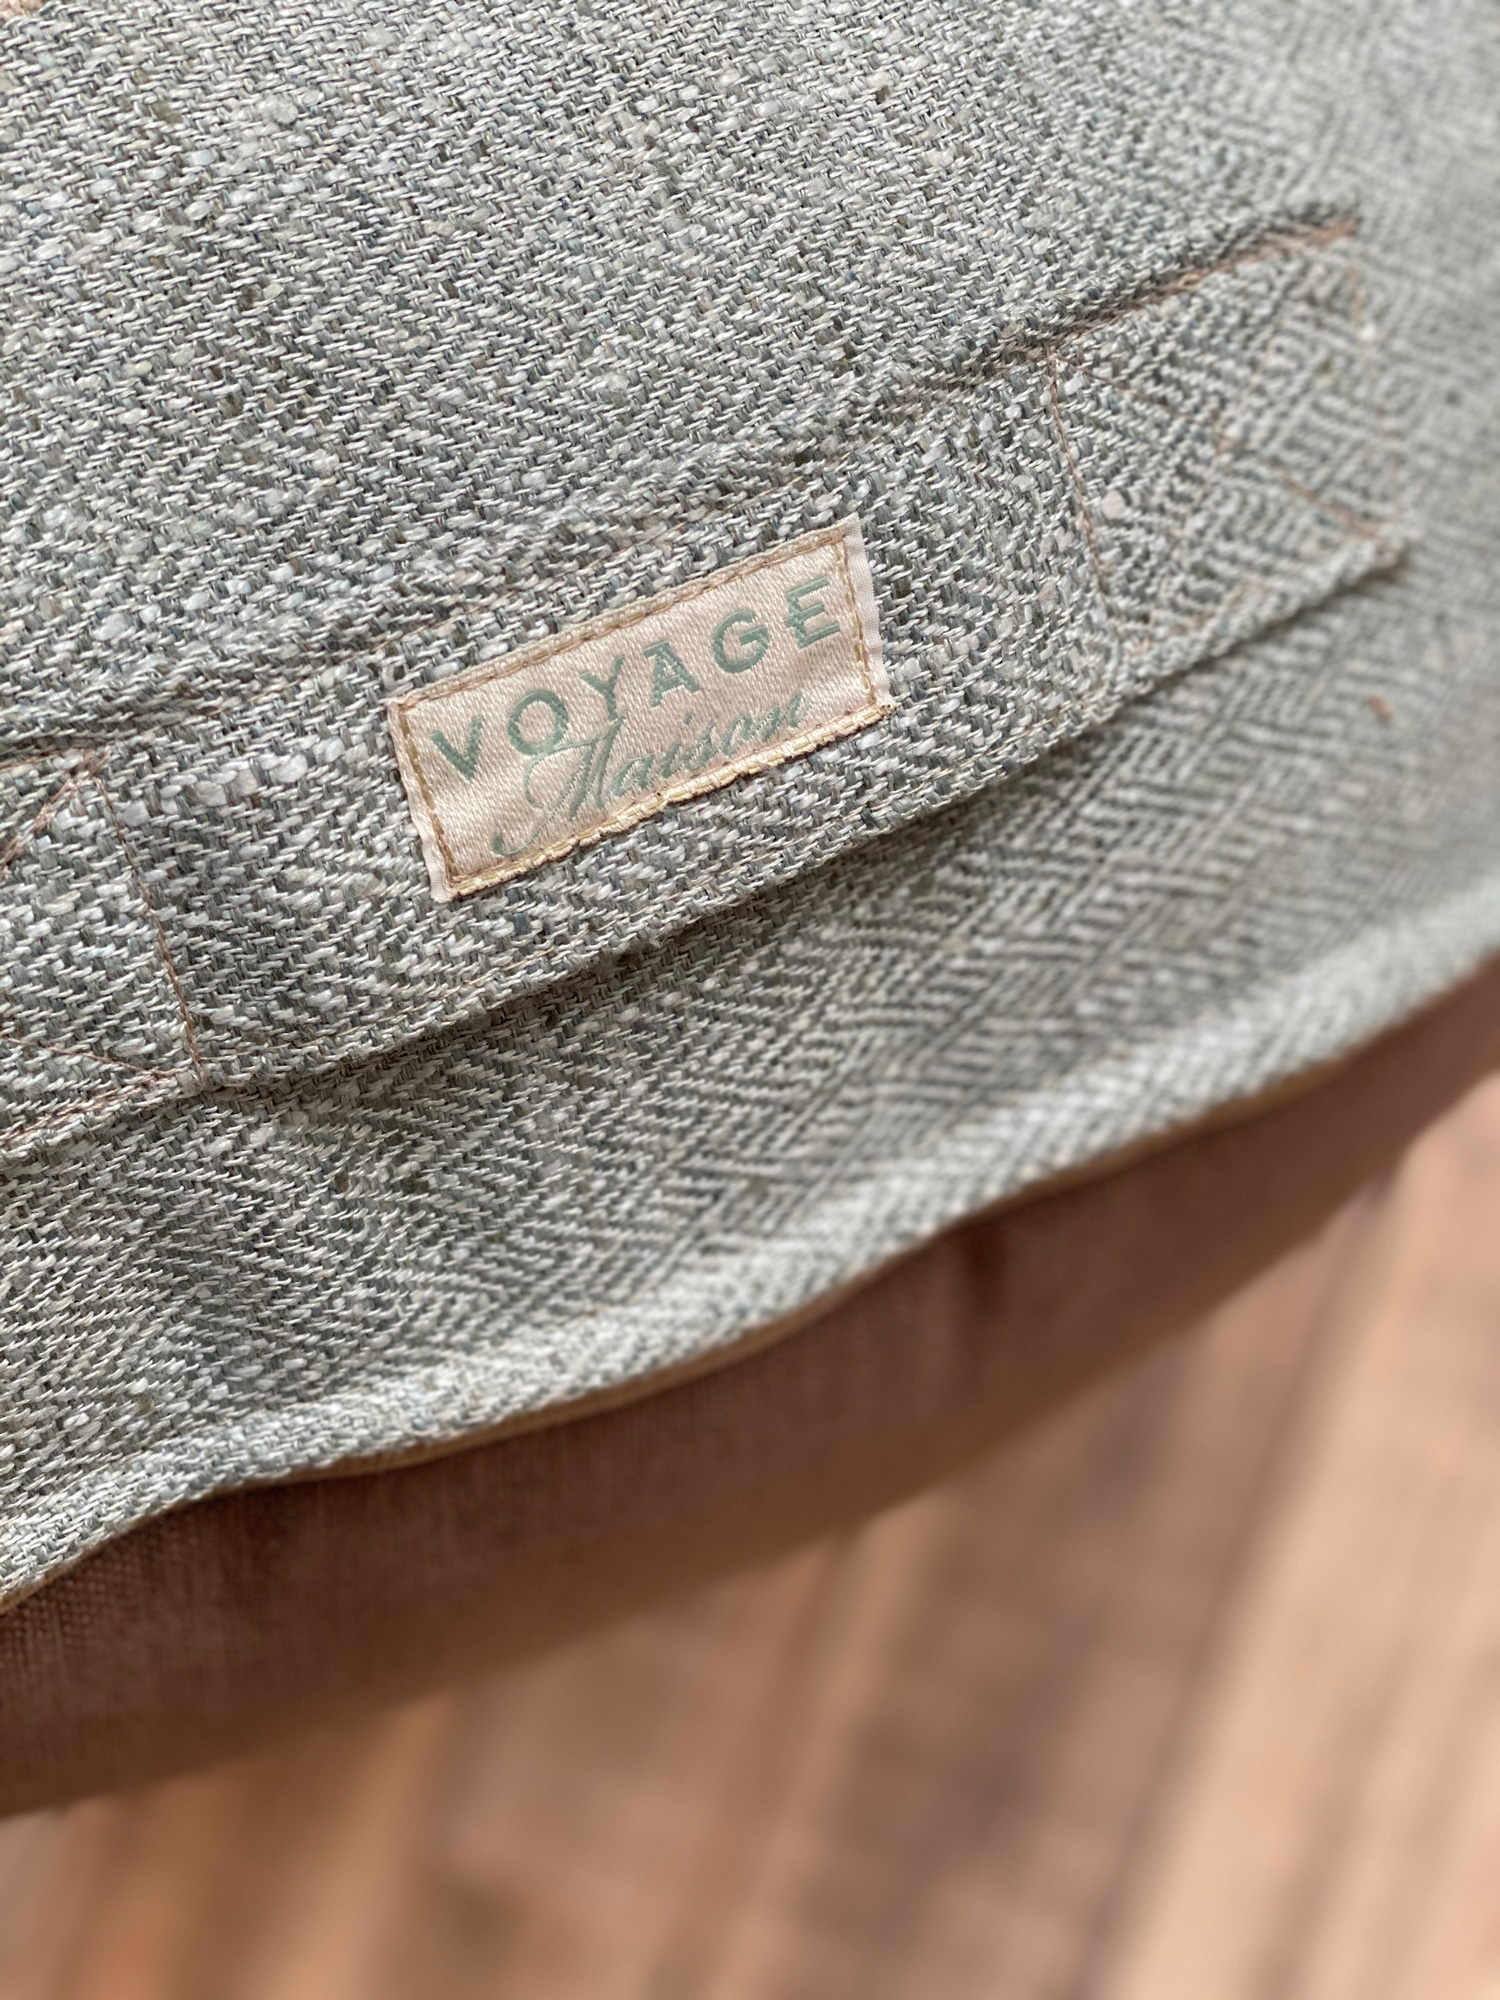 Voyage Edmuir Sorbet Floor Cushion close up